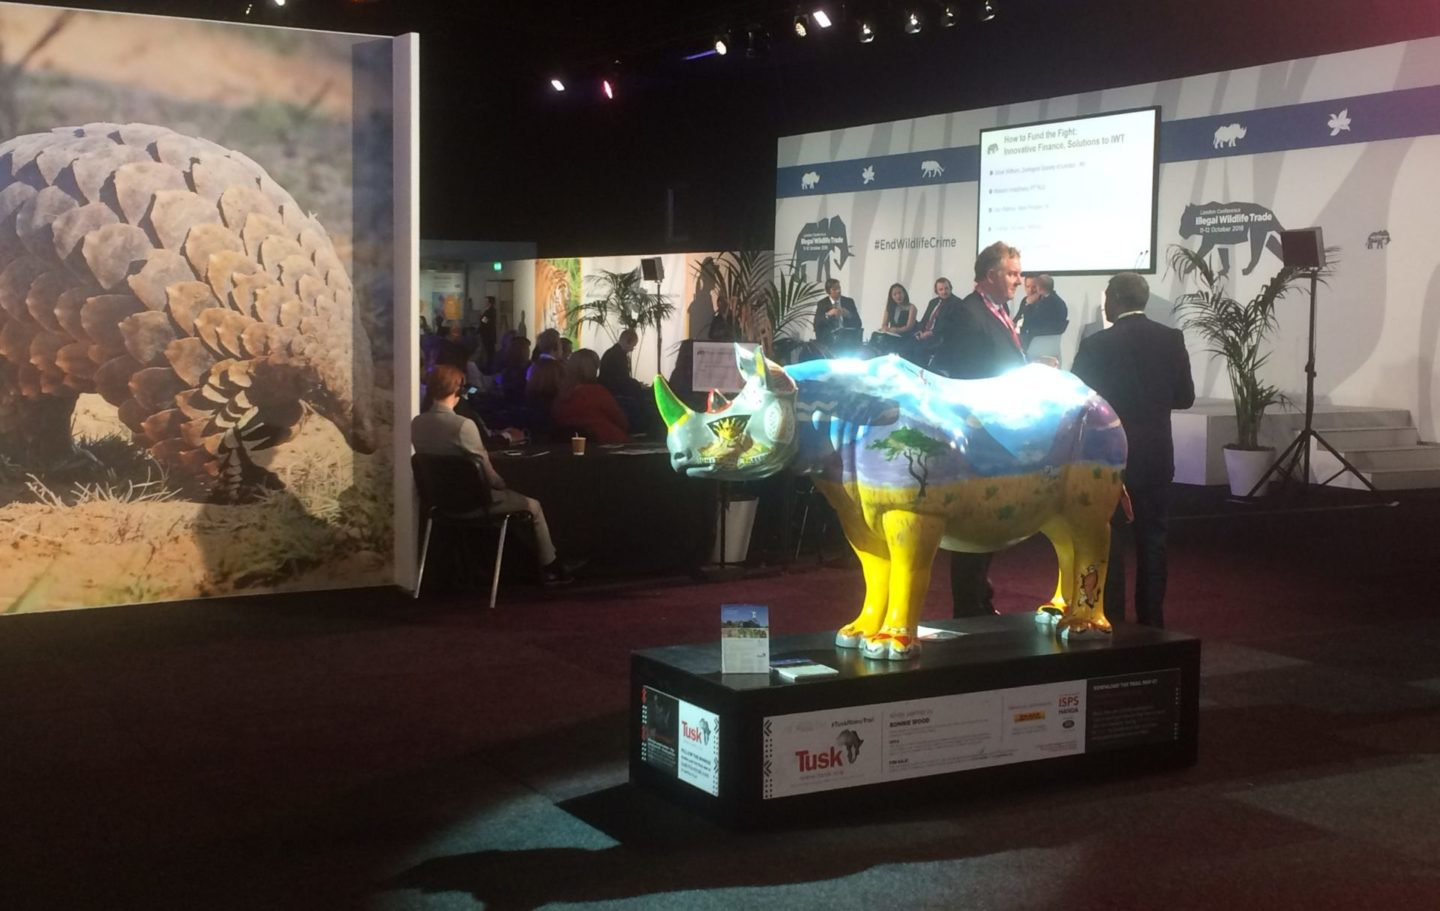 The Tusk Rhino Trail continued at the IWT Conference, including Ronnie Wood's Spike